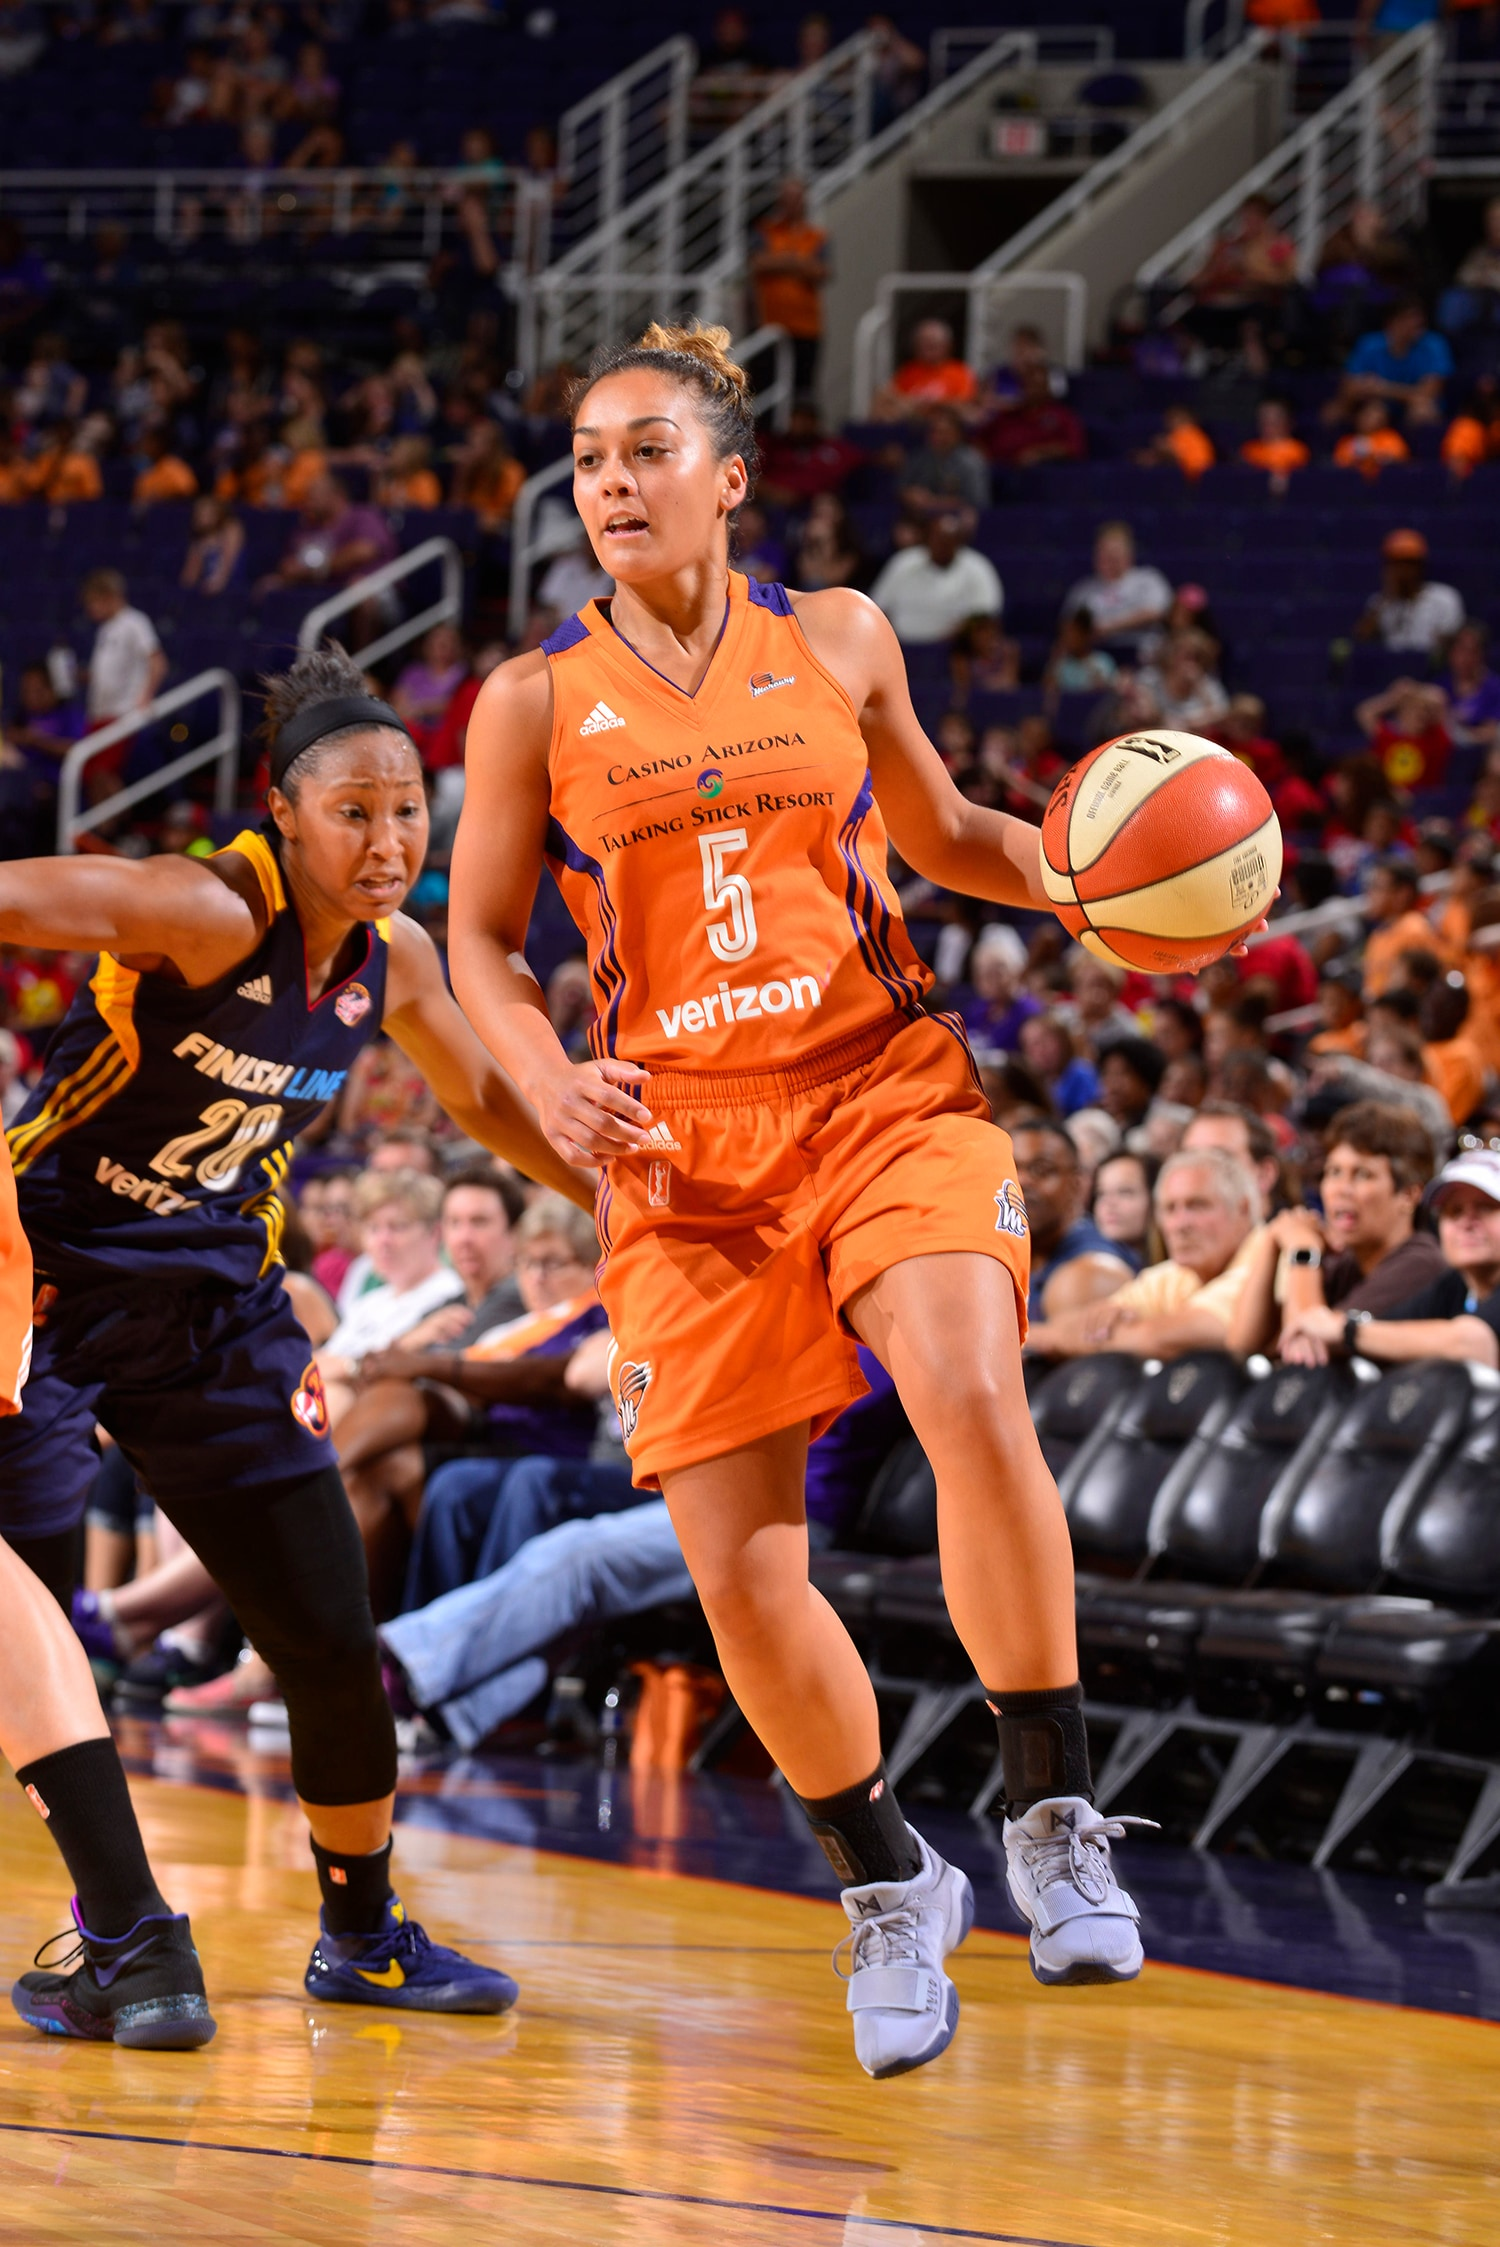 phoenix mercury indiana fever july 19, 2017 leilani mitchell